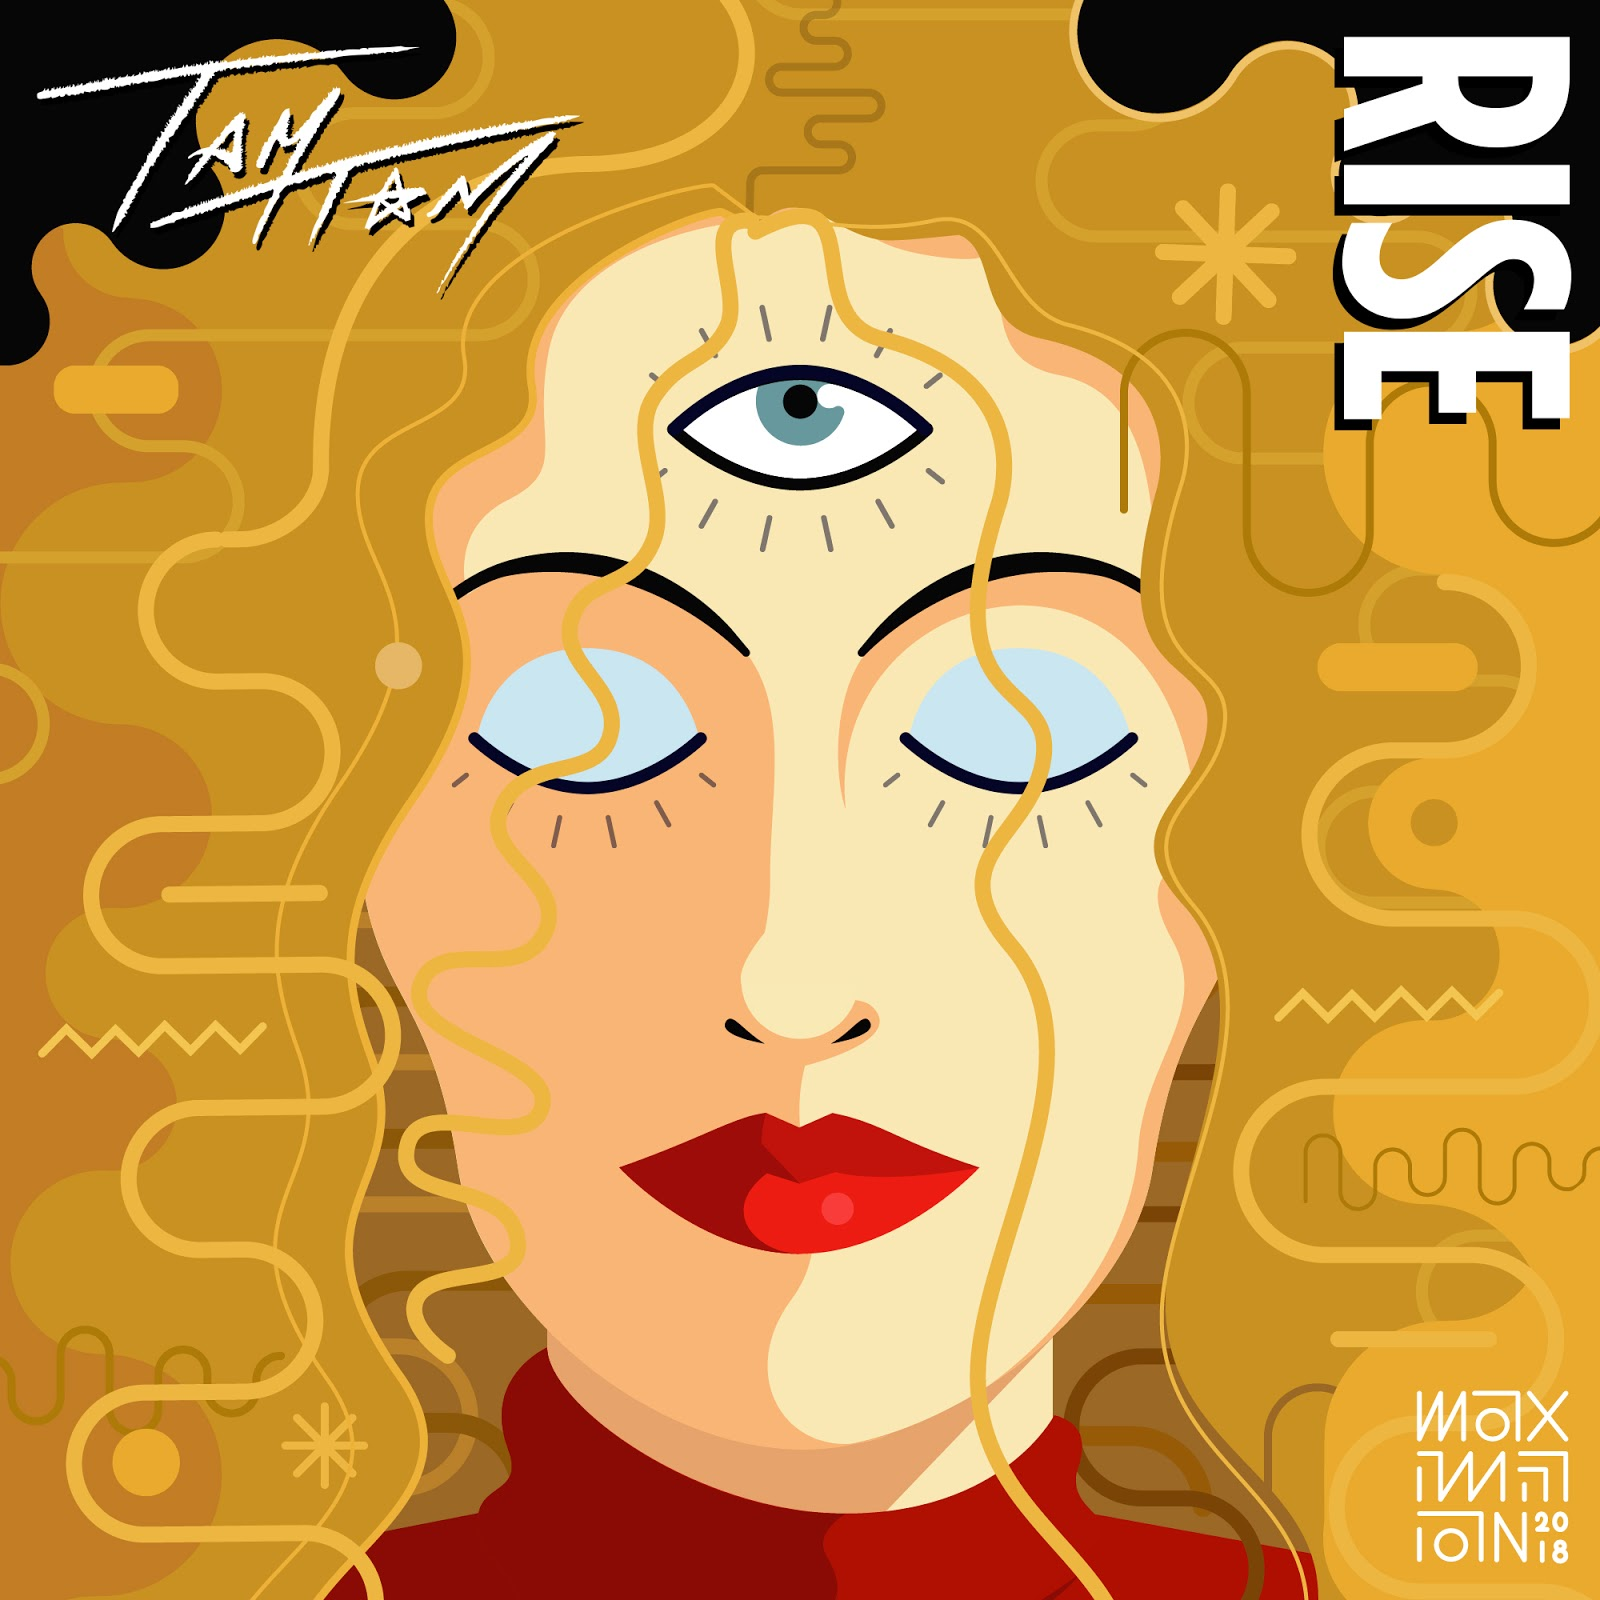 RISE album cover artwork